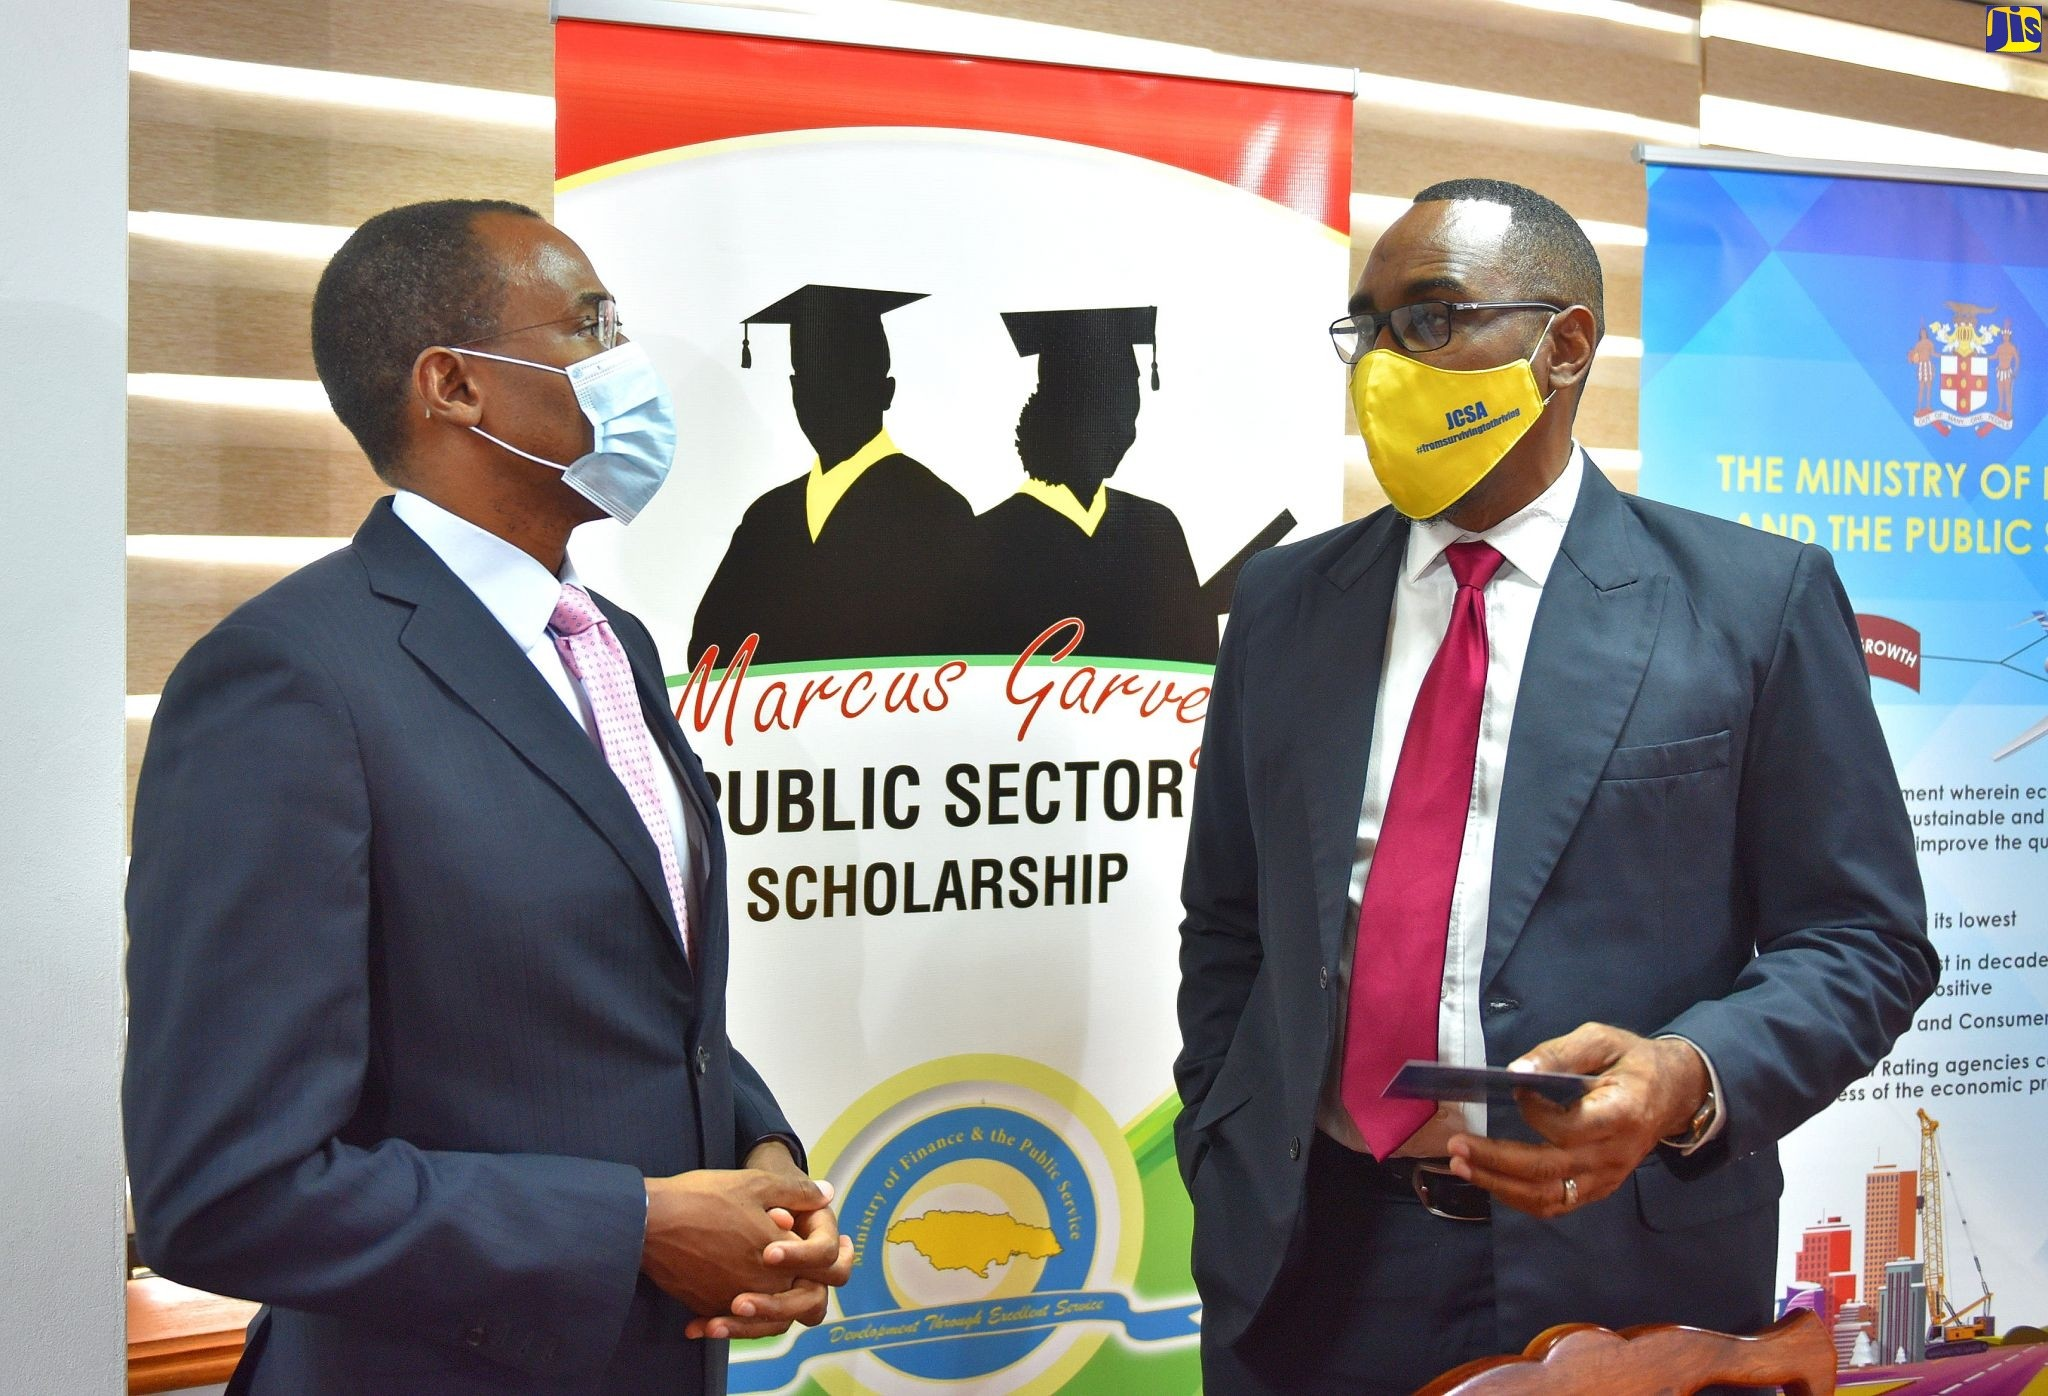 185 applications have been submitted to the Secretariat overseeing the Government's $1-billion Marcus Garvey Graduate Scholarship for Public Sector Employees.